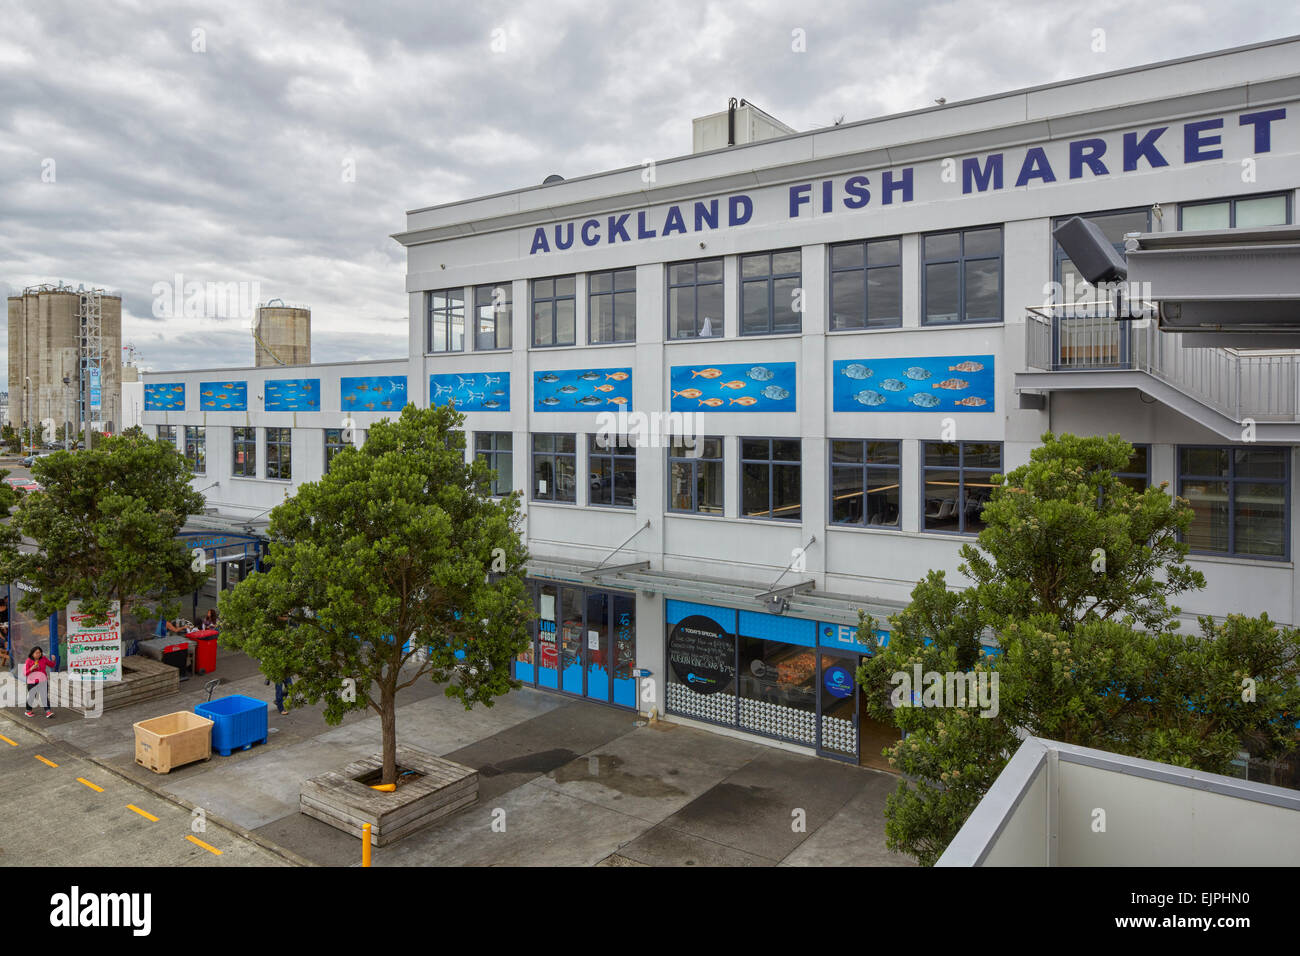 Auckland Fish Market, Auckland, North Island, New Zealand - Stock Image